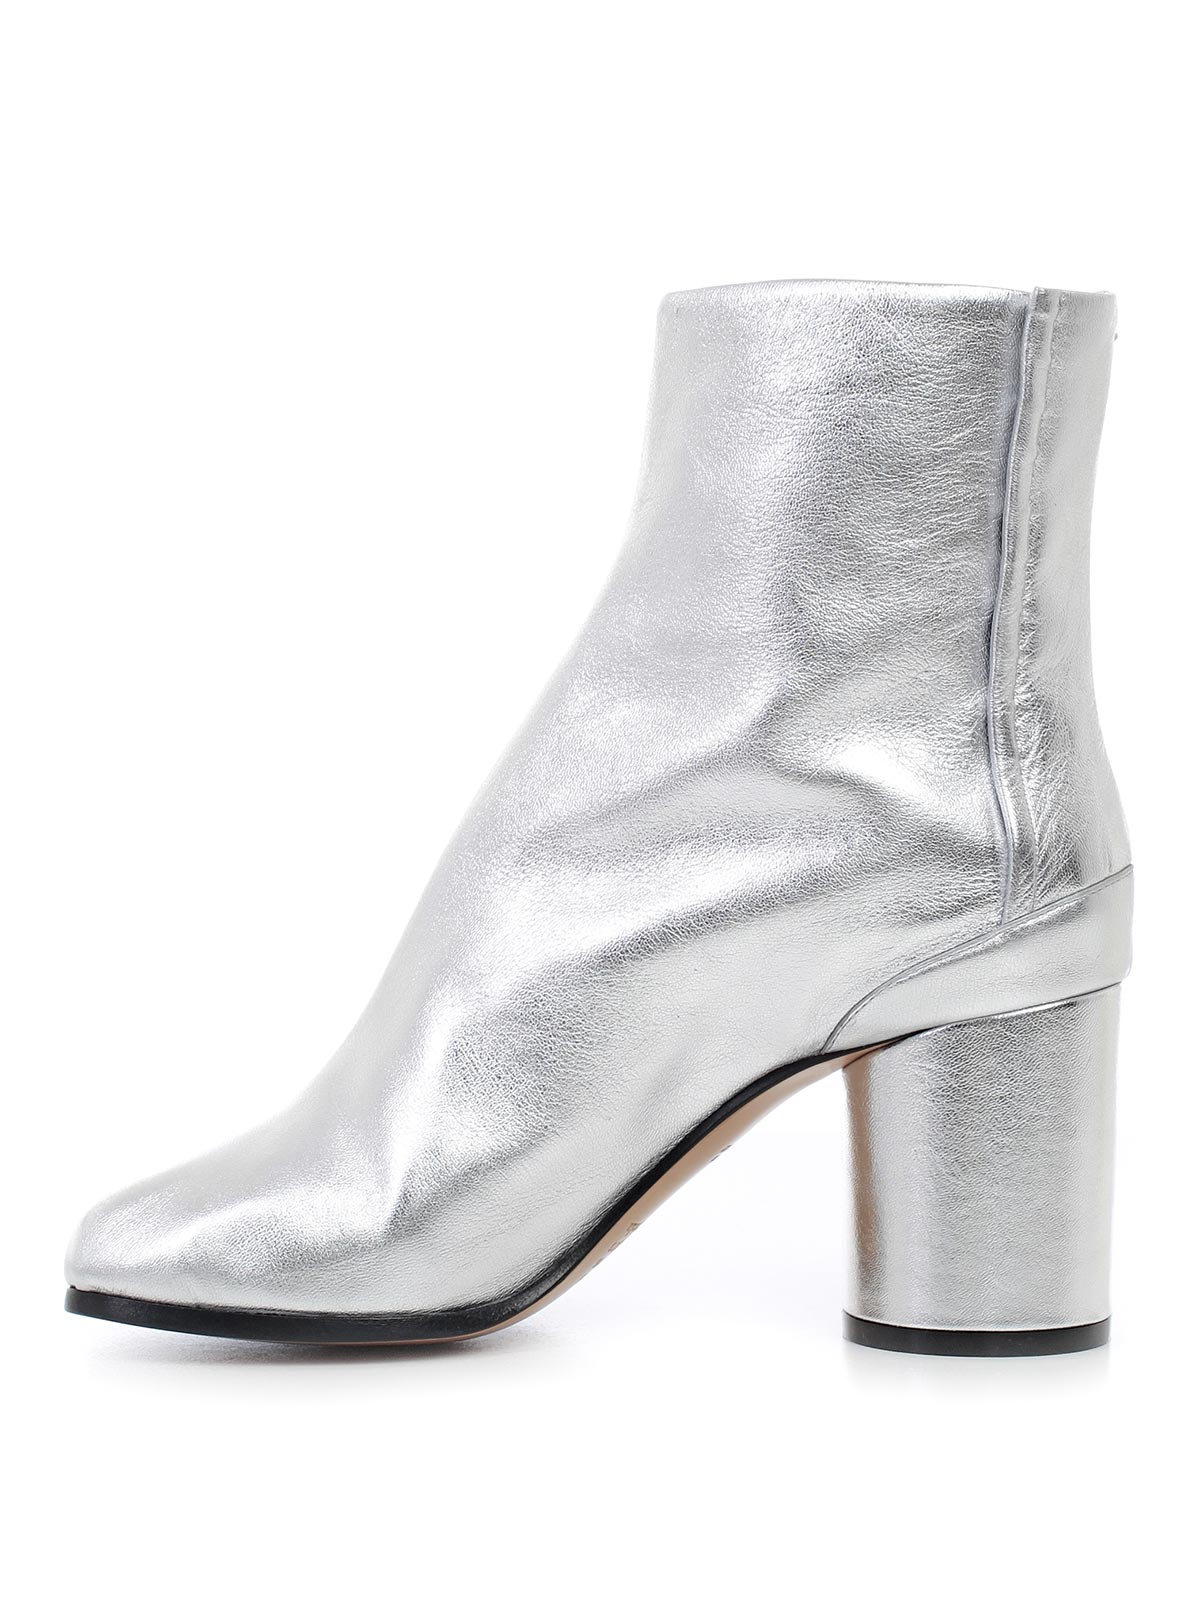 Picture of Maison Margiela Boots